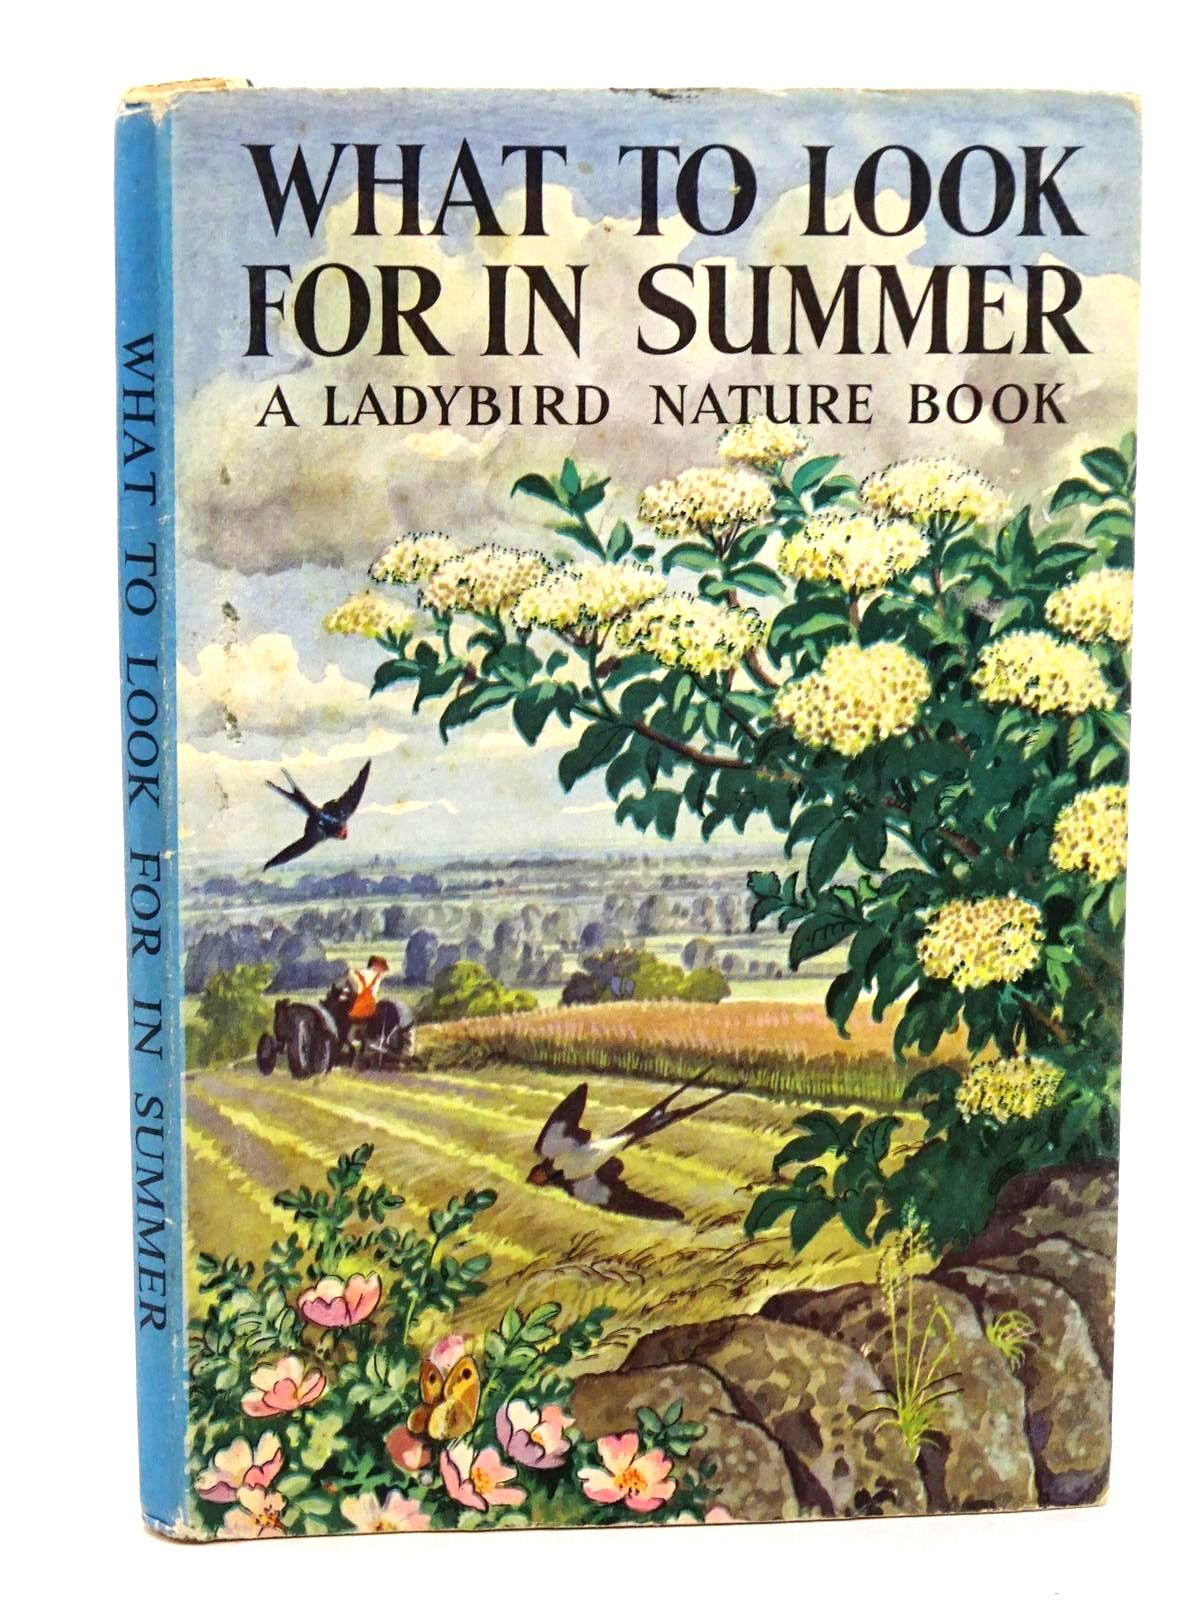 Photo of WHAT TO LOOK FOR IN SUMMER written by Watson, E.L. Grant illustrated by Tunnicliffe, C.F. published by Wills & Hepworth Ltd. (STOCK CODE: 1318288)  for sale by Stella & Rose's Books